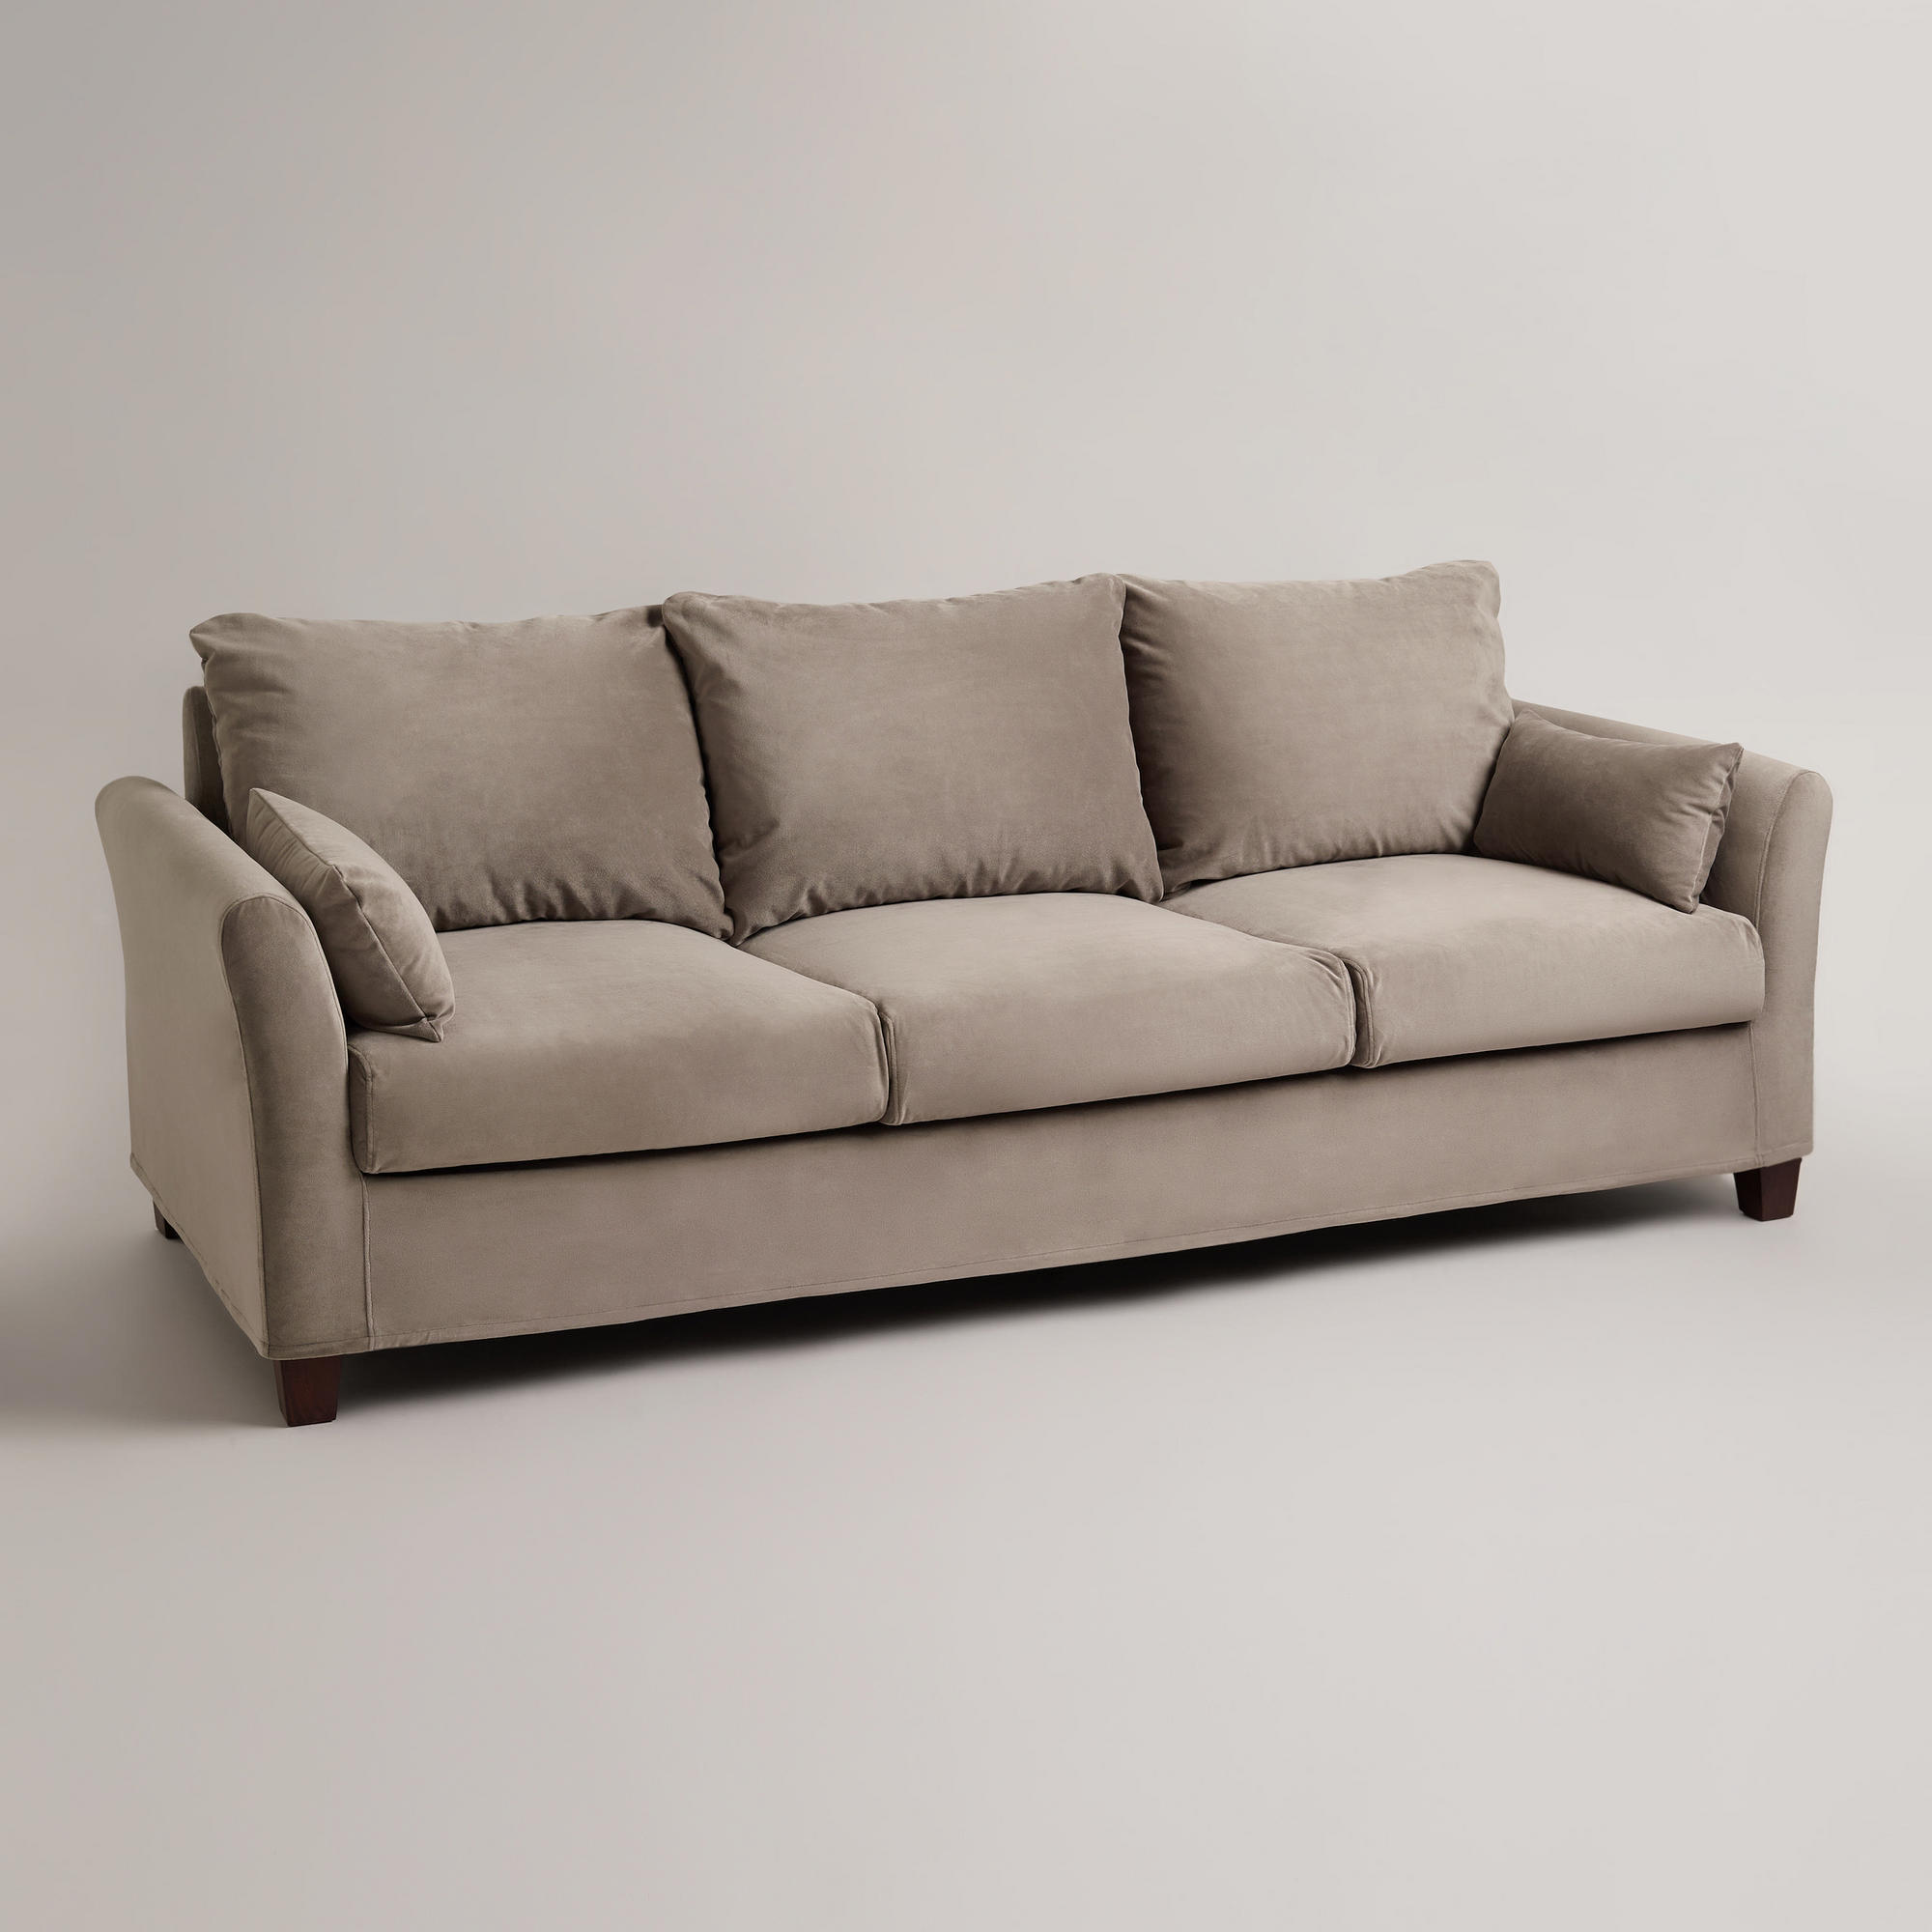 luxe 2 seat sofa slipcover dfs french connection zinc leather gray mink velvet 3 from cost plus world market